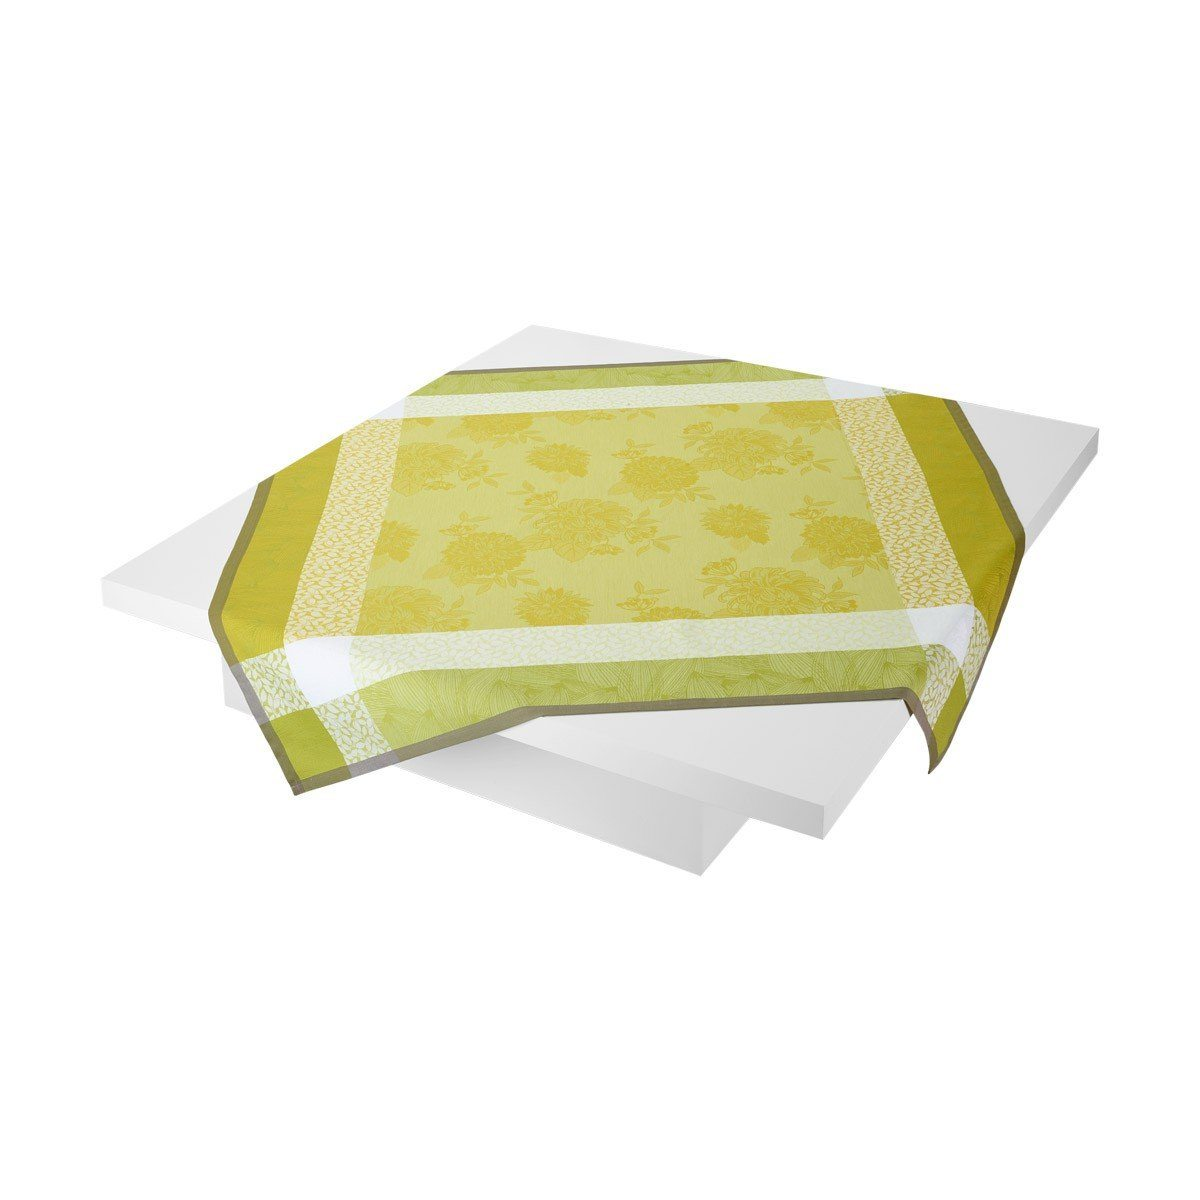 Le Jacquard Français Table Linen Parfums De Bagatelle Fig Linens Freesia Tablecloth Green Yellow